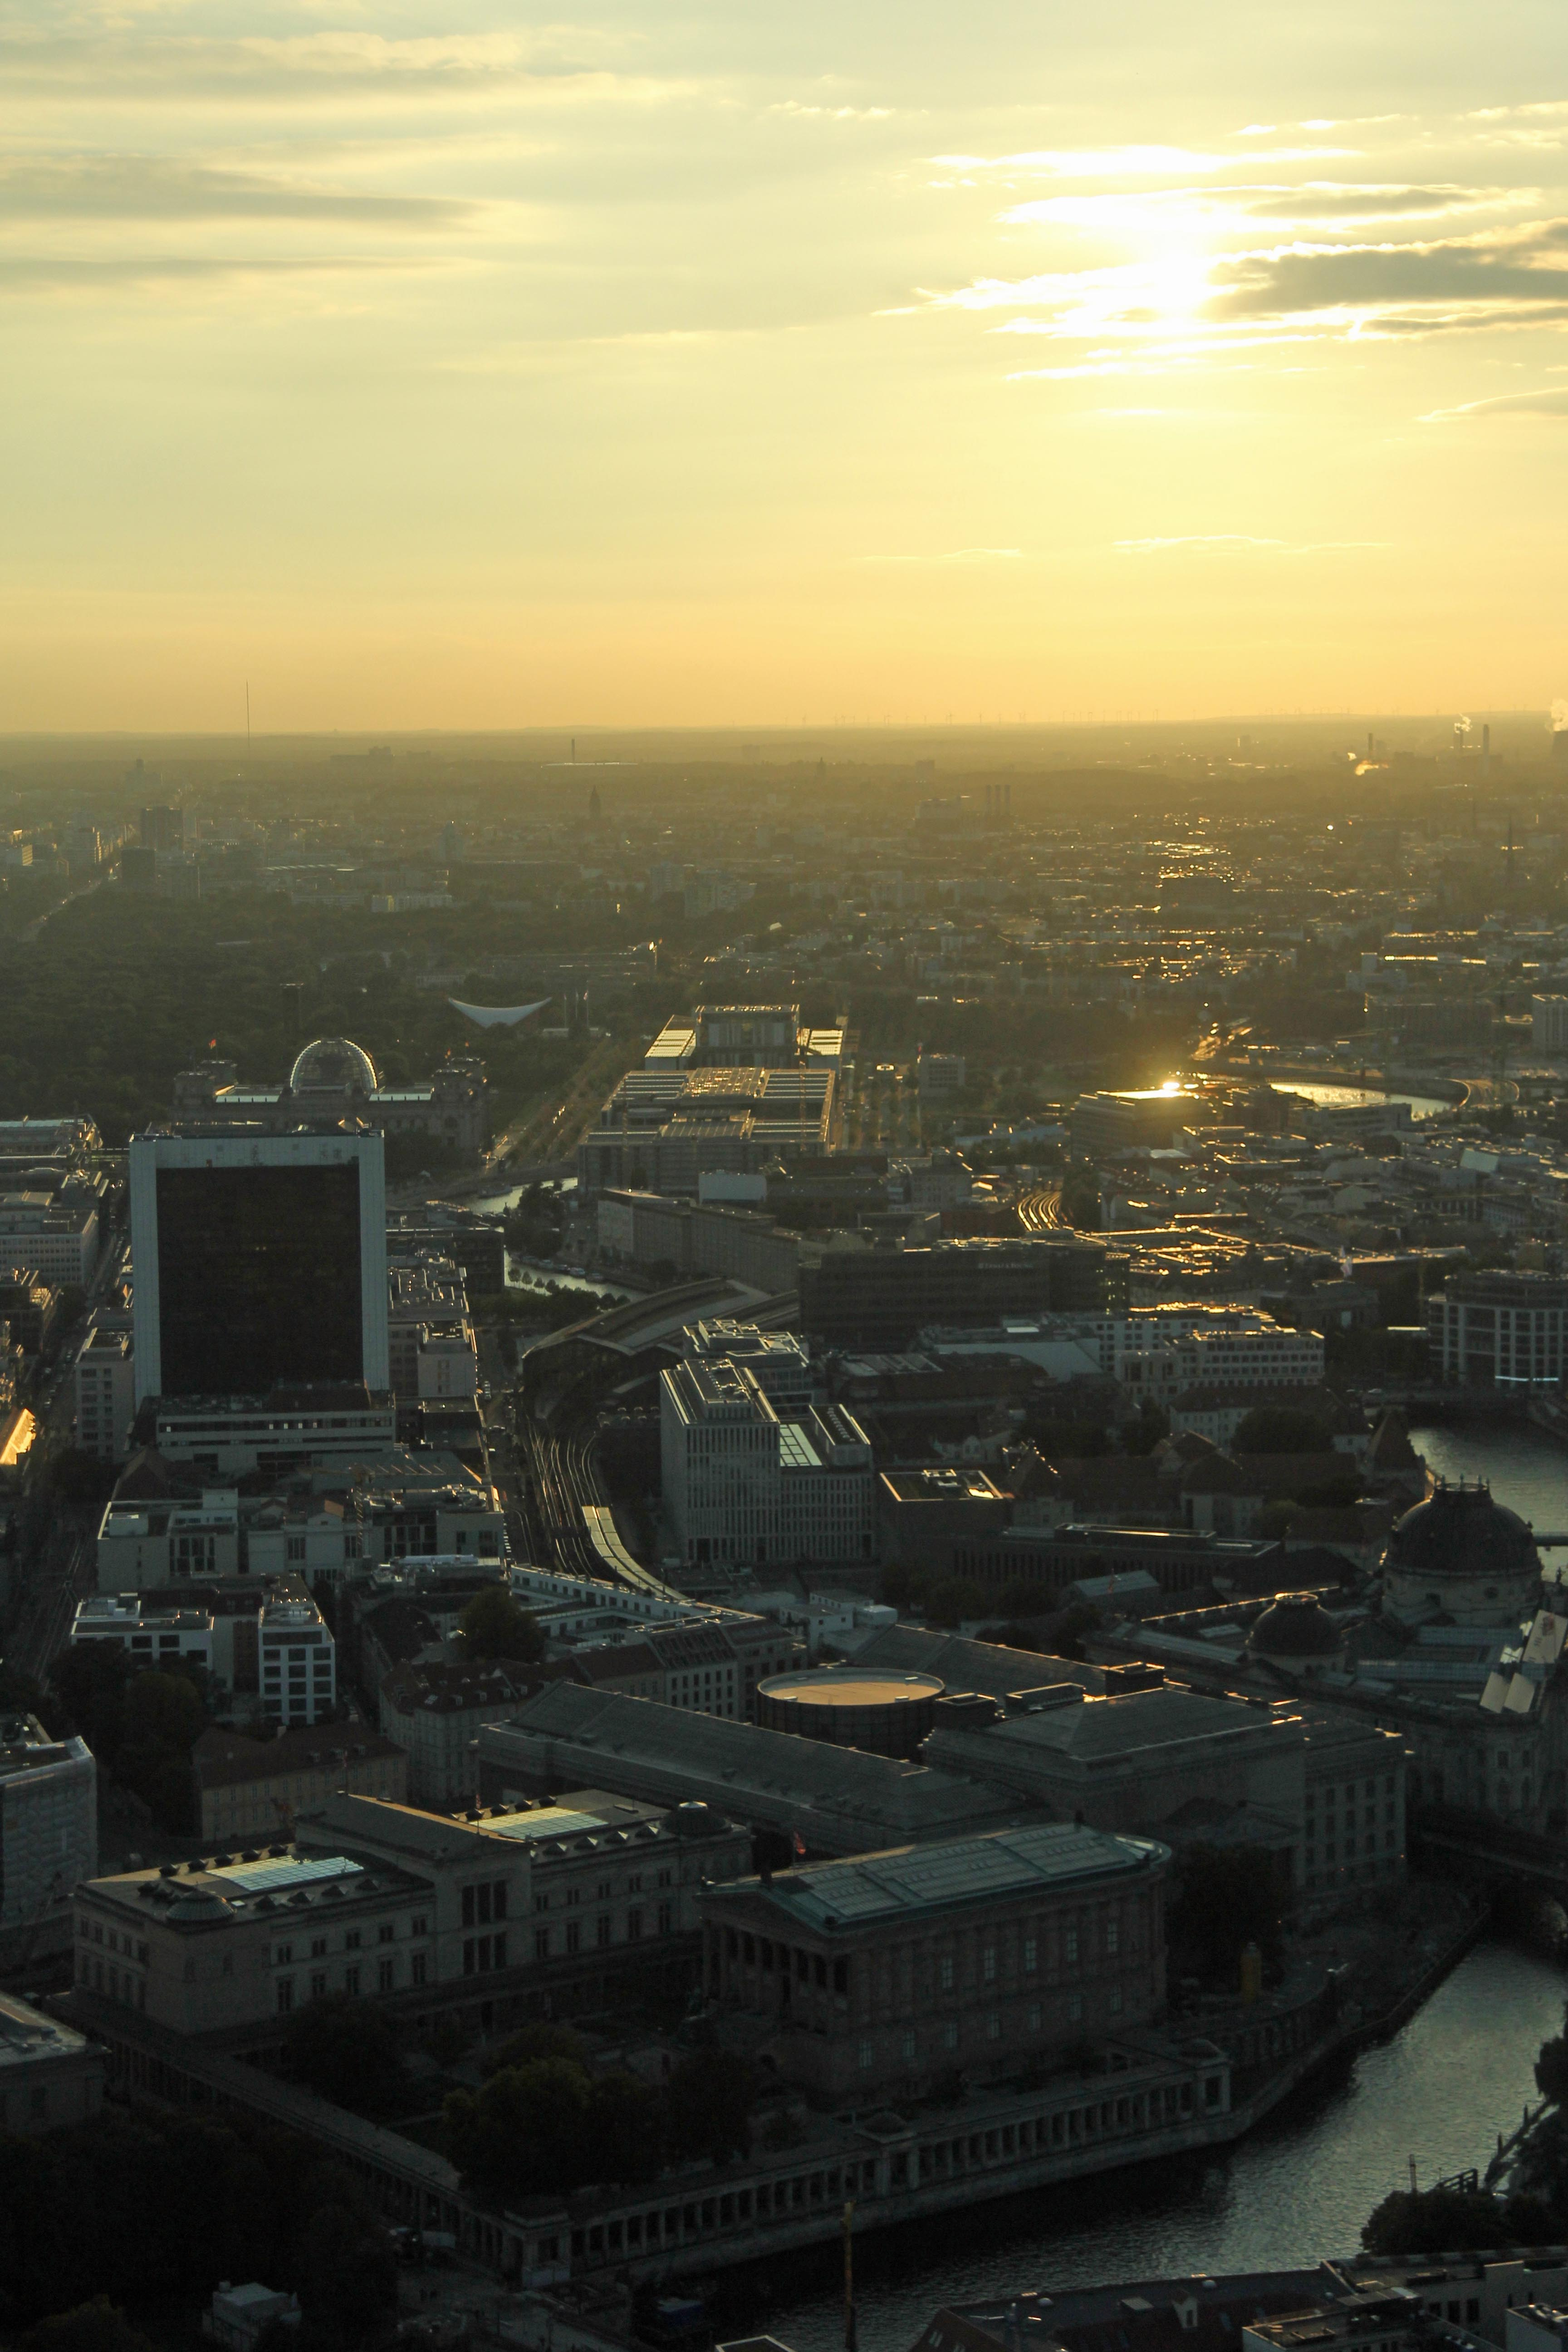 Golden light over Berlin from the Fernehturm (TV Tower) at Alexanderplatz